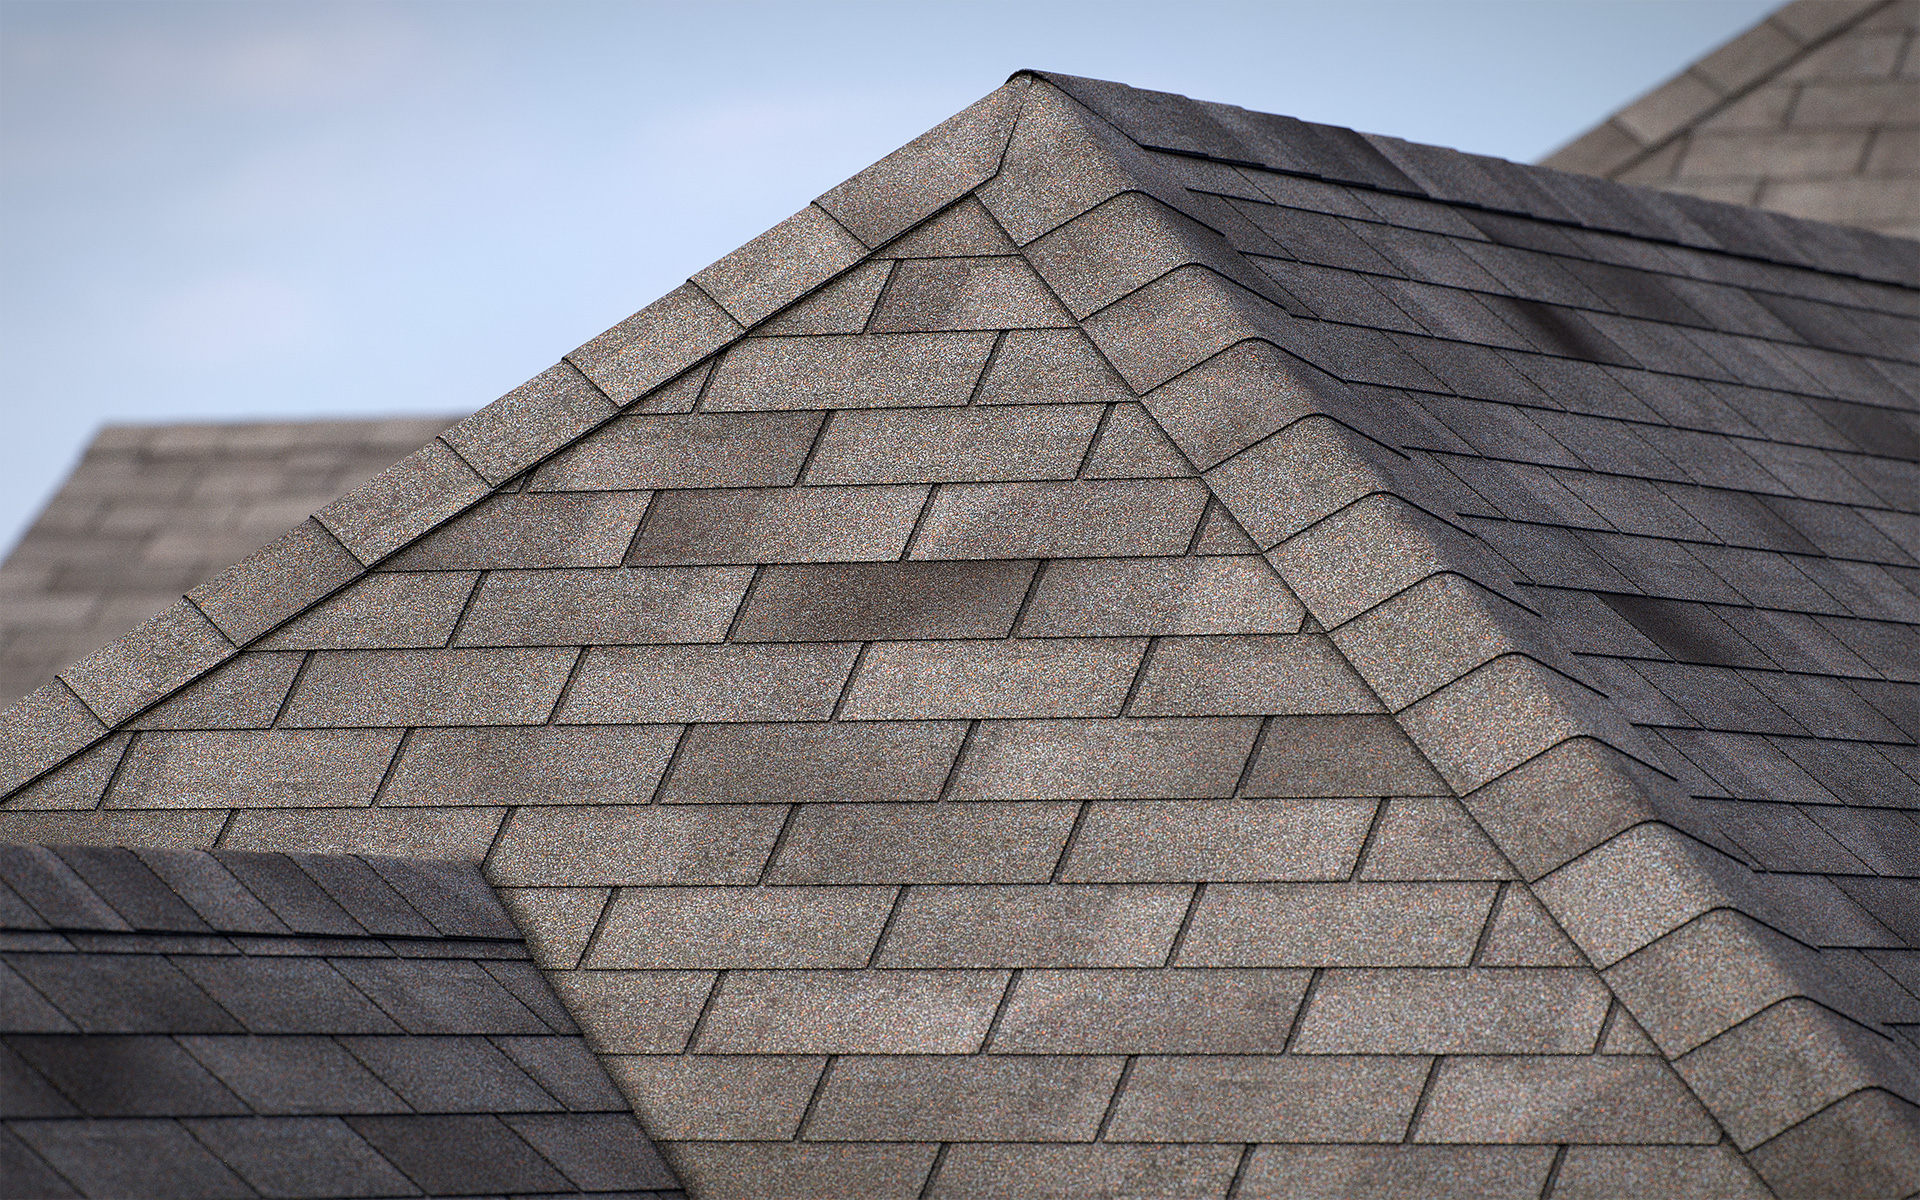 3-tab asphalt roof shingles wood color 3D model preset for 3dsmax and RailClone. Rendered with vray, made for arch-viz.